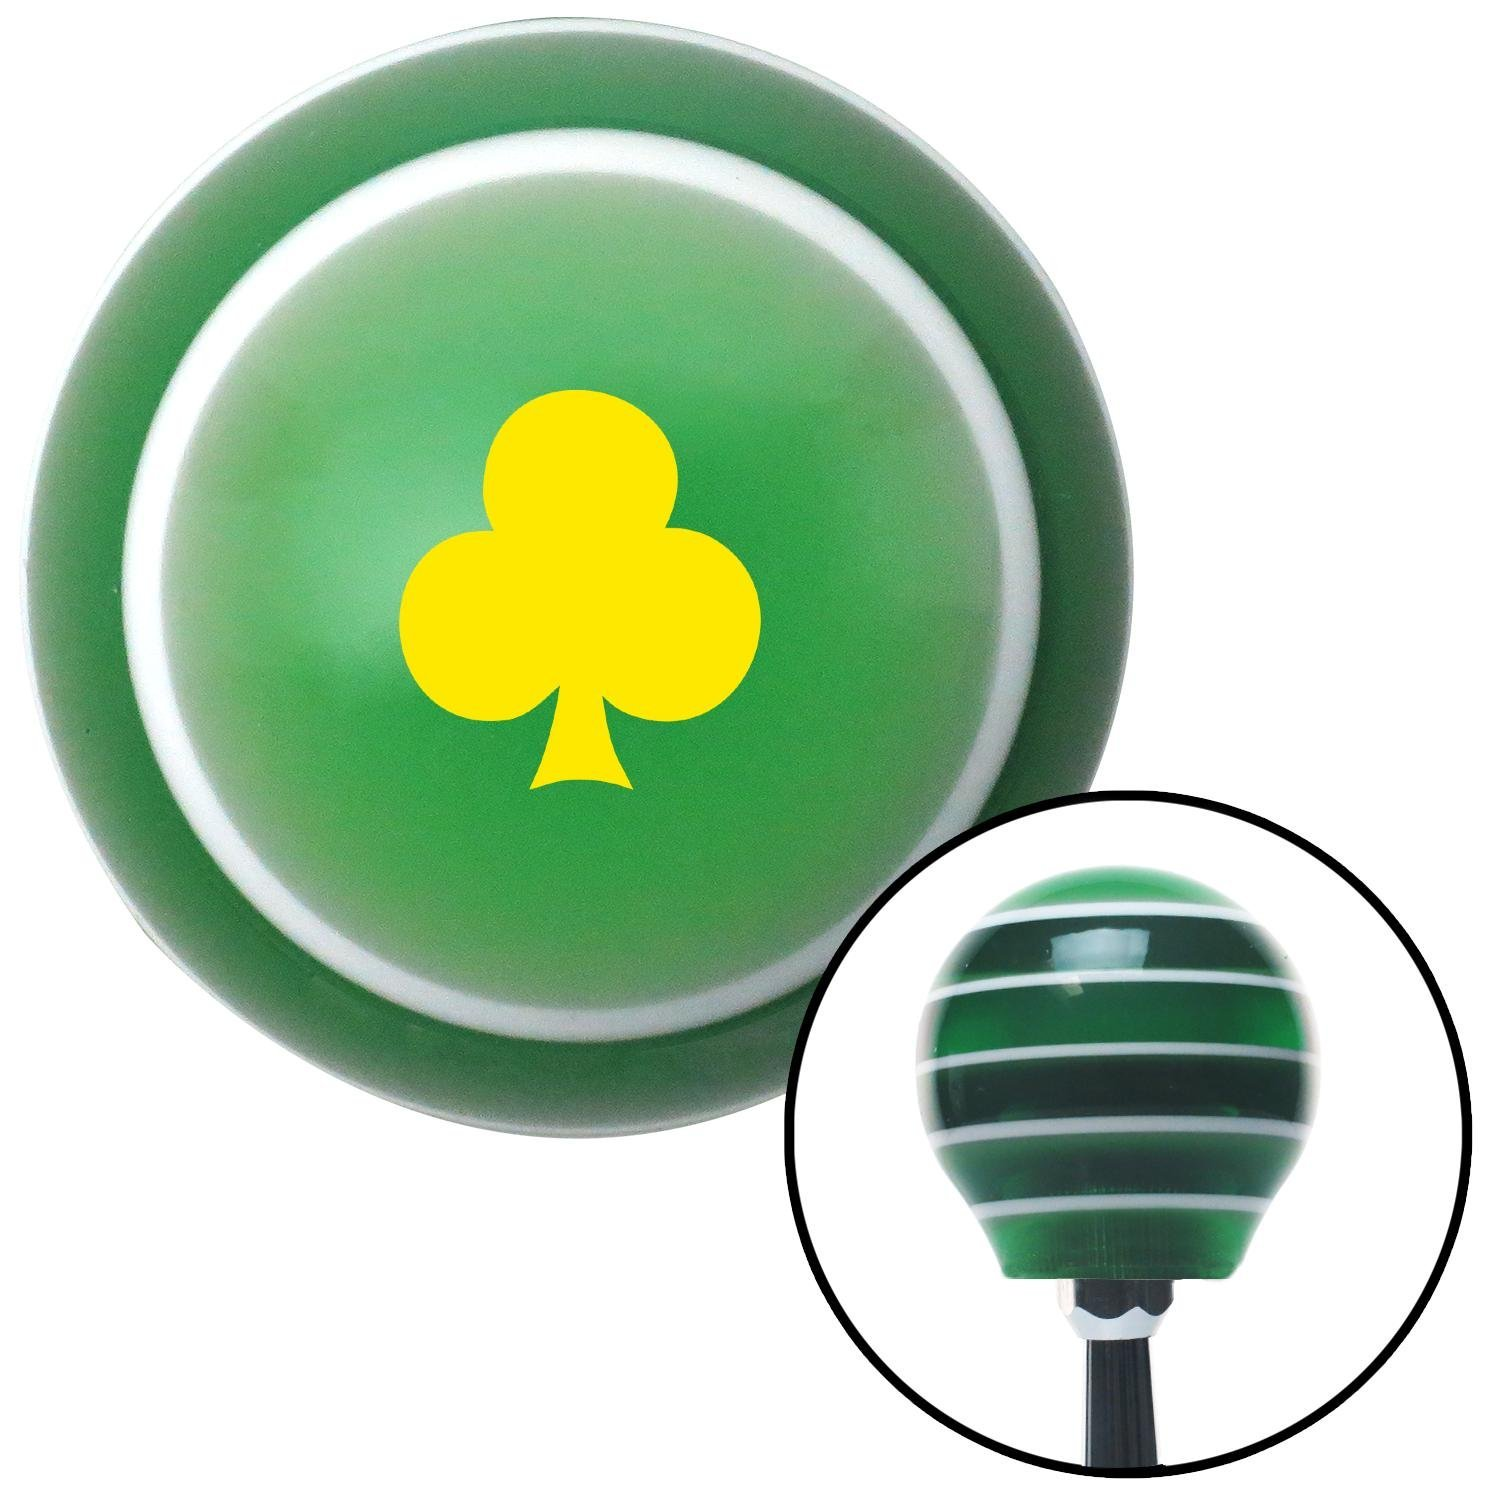 American Shifter 274838 Shift Knob Yellow Clubs Green Stripe with M16 x 1.5 Insert